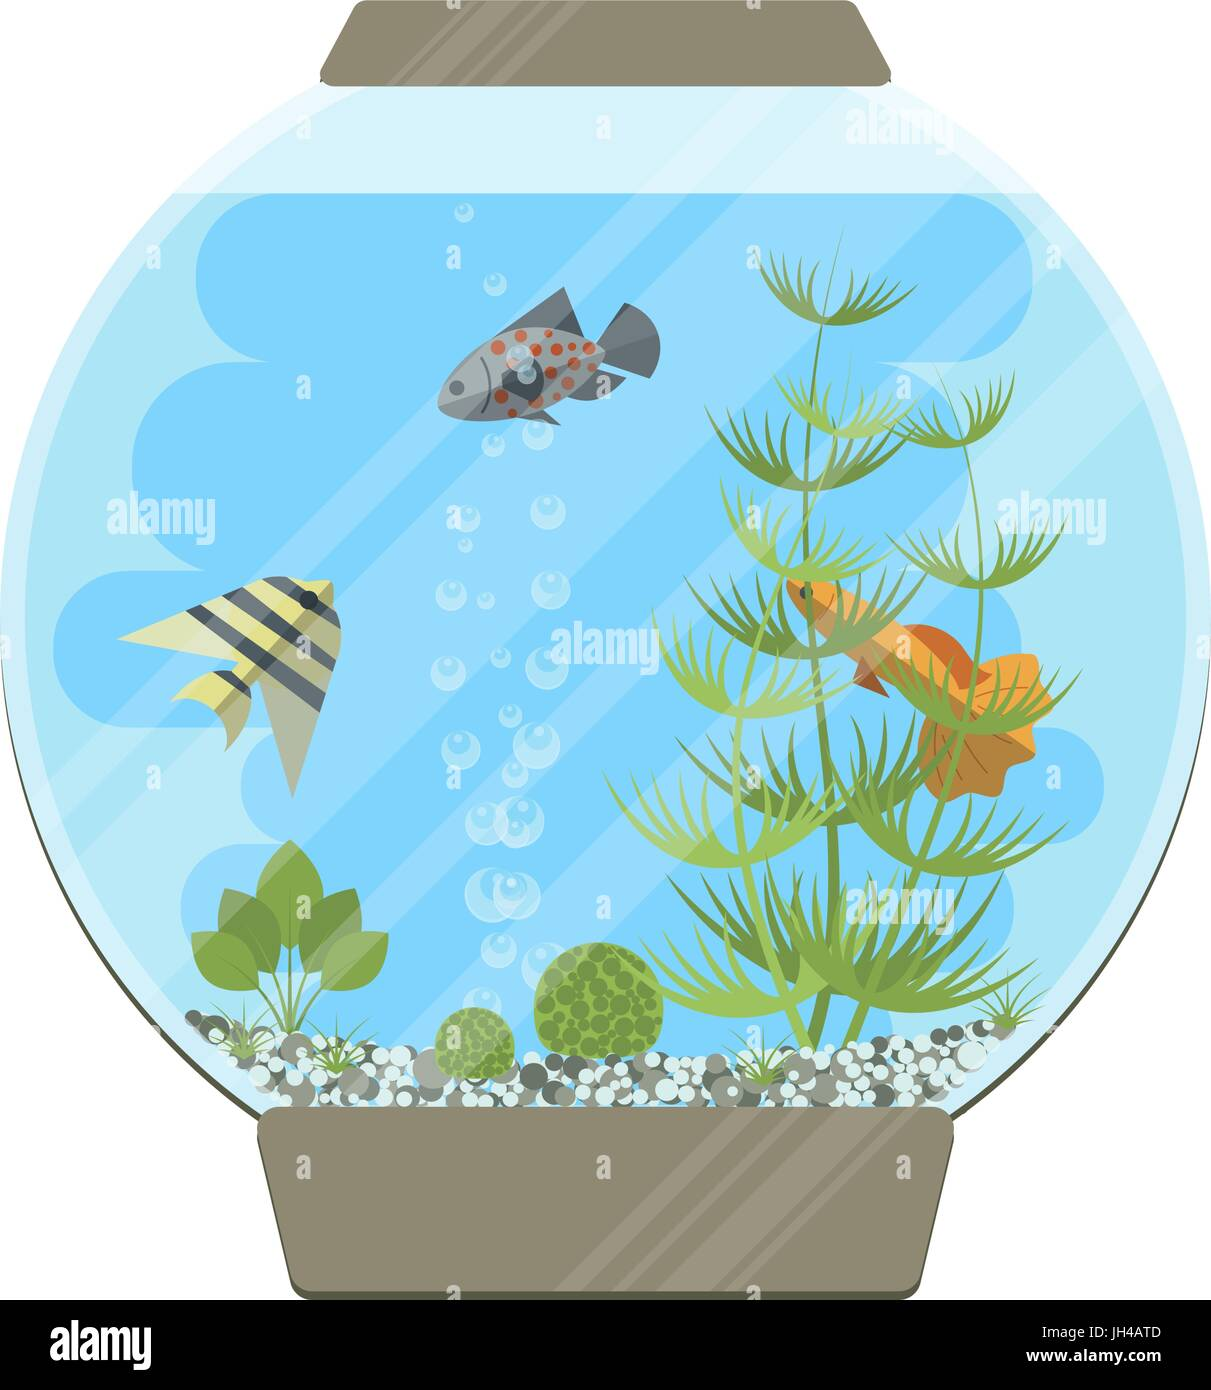 Cartoon vector home aquarium illustration with water, plants and fish. - Stock Image